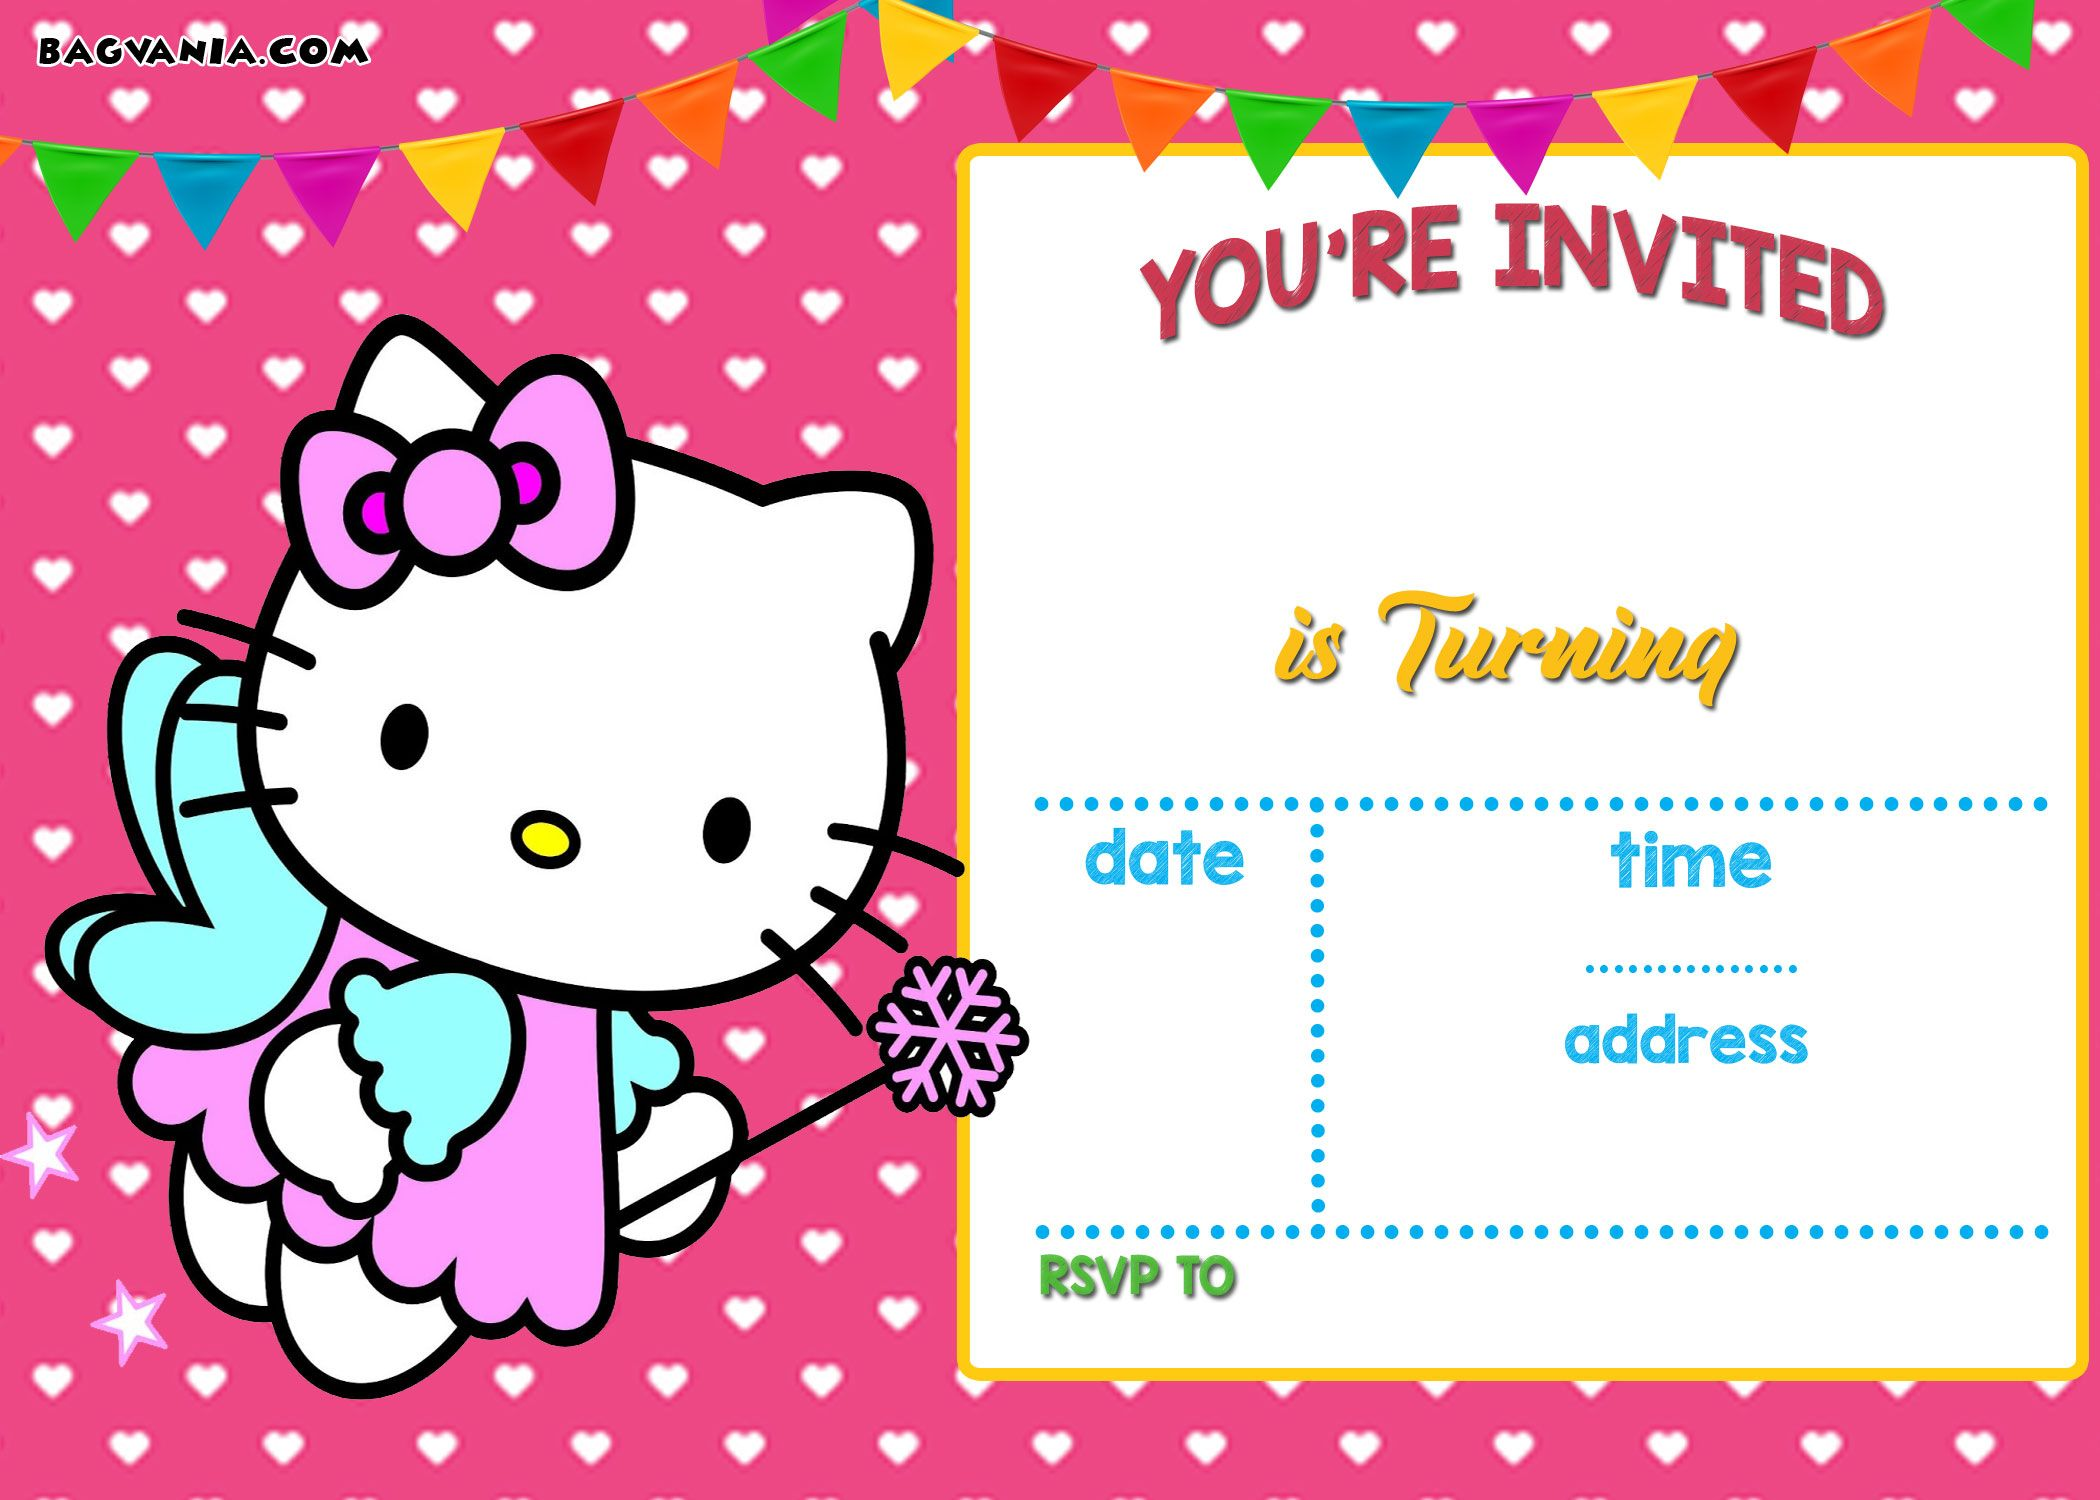 Celebrate Your Birthday Girl With Our Lovable Collection Of Hello Kitty Online Invitations Say Hey To Invites And Have The